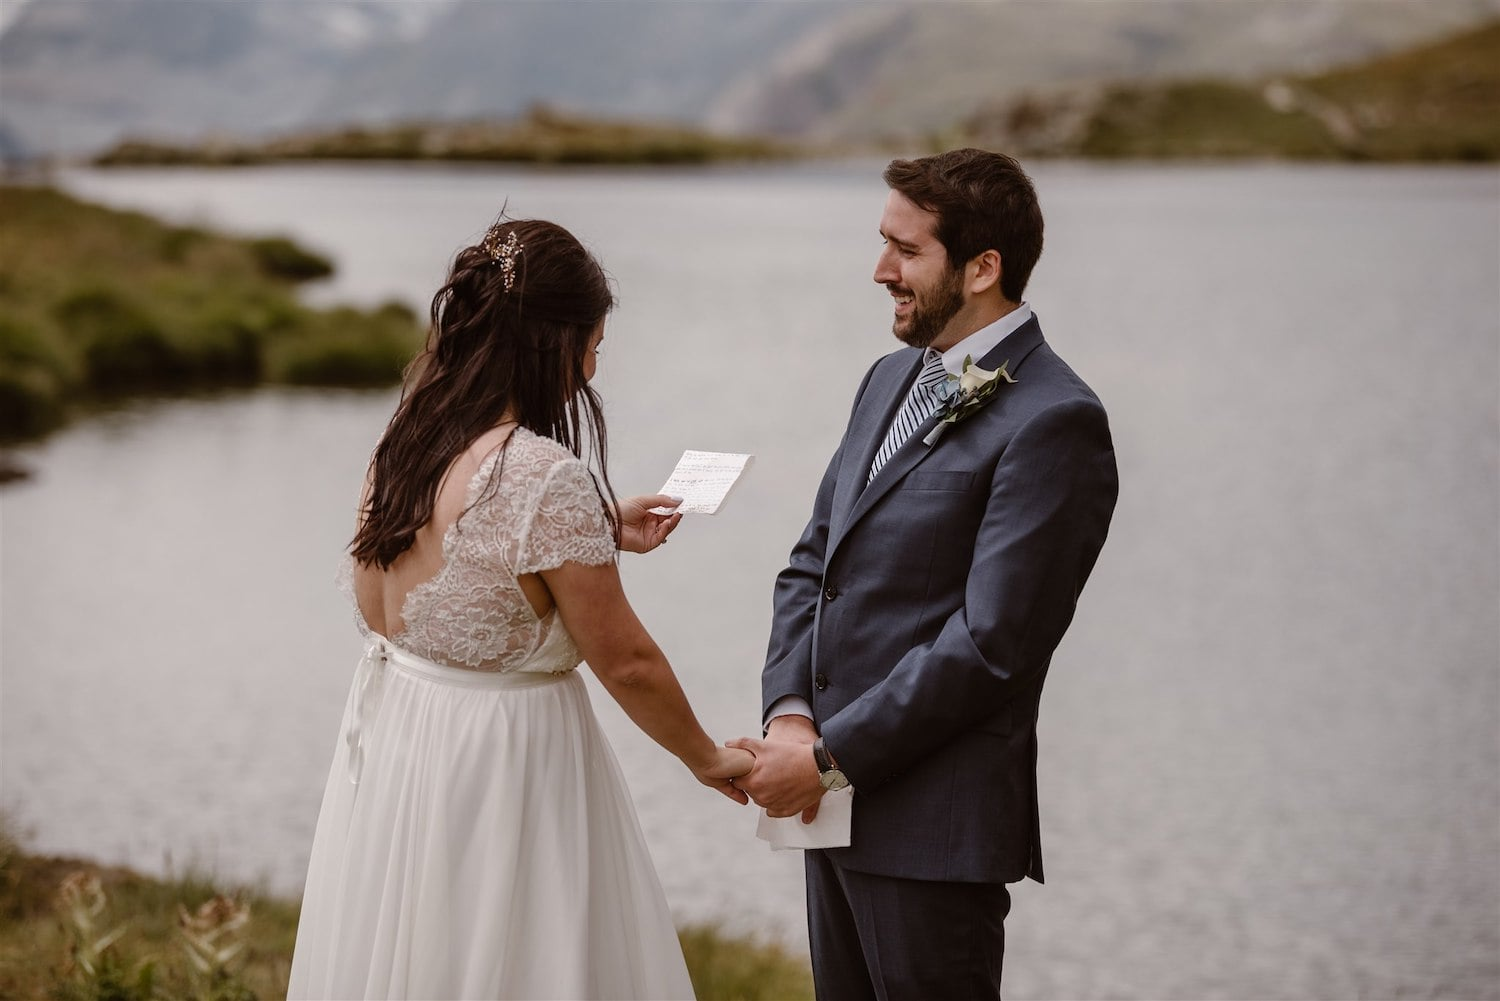 Couple exchanging vows during their summer elopement in Zermatt